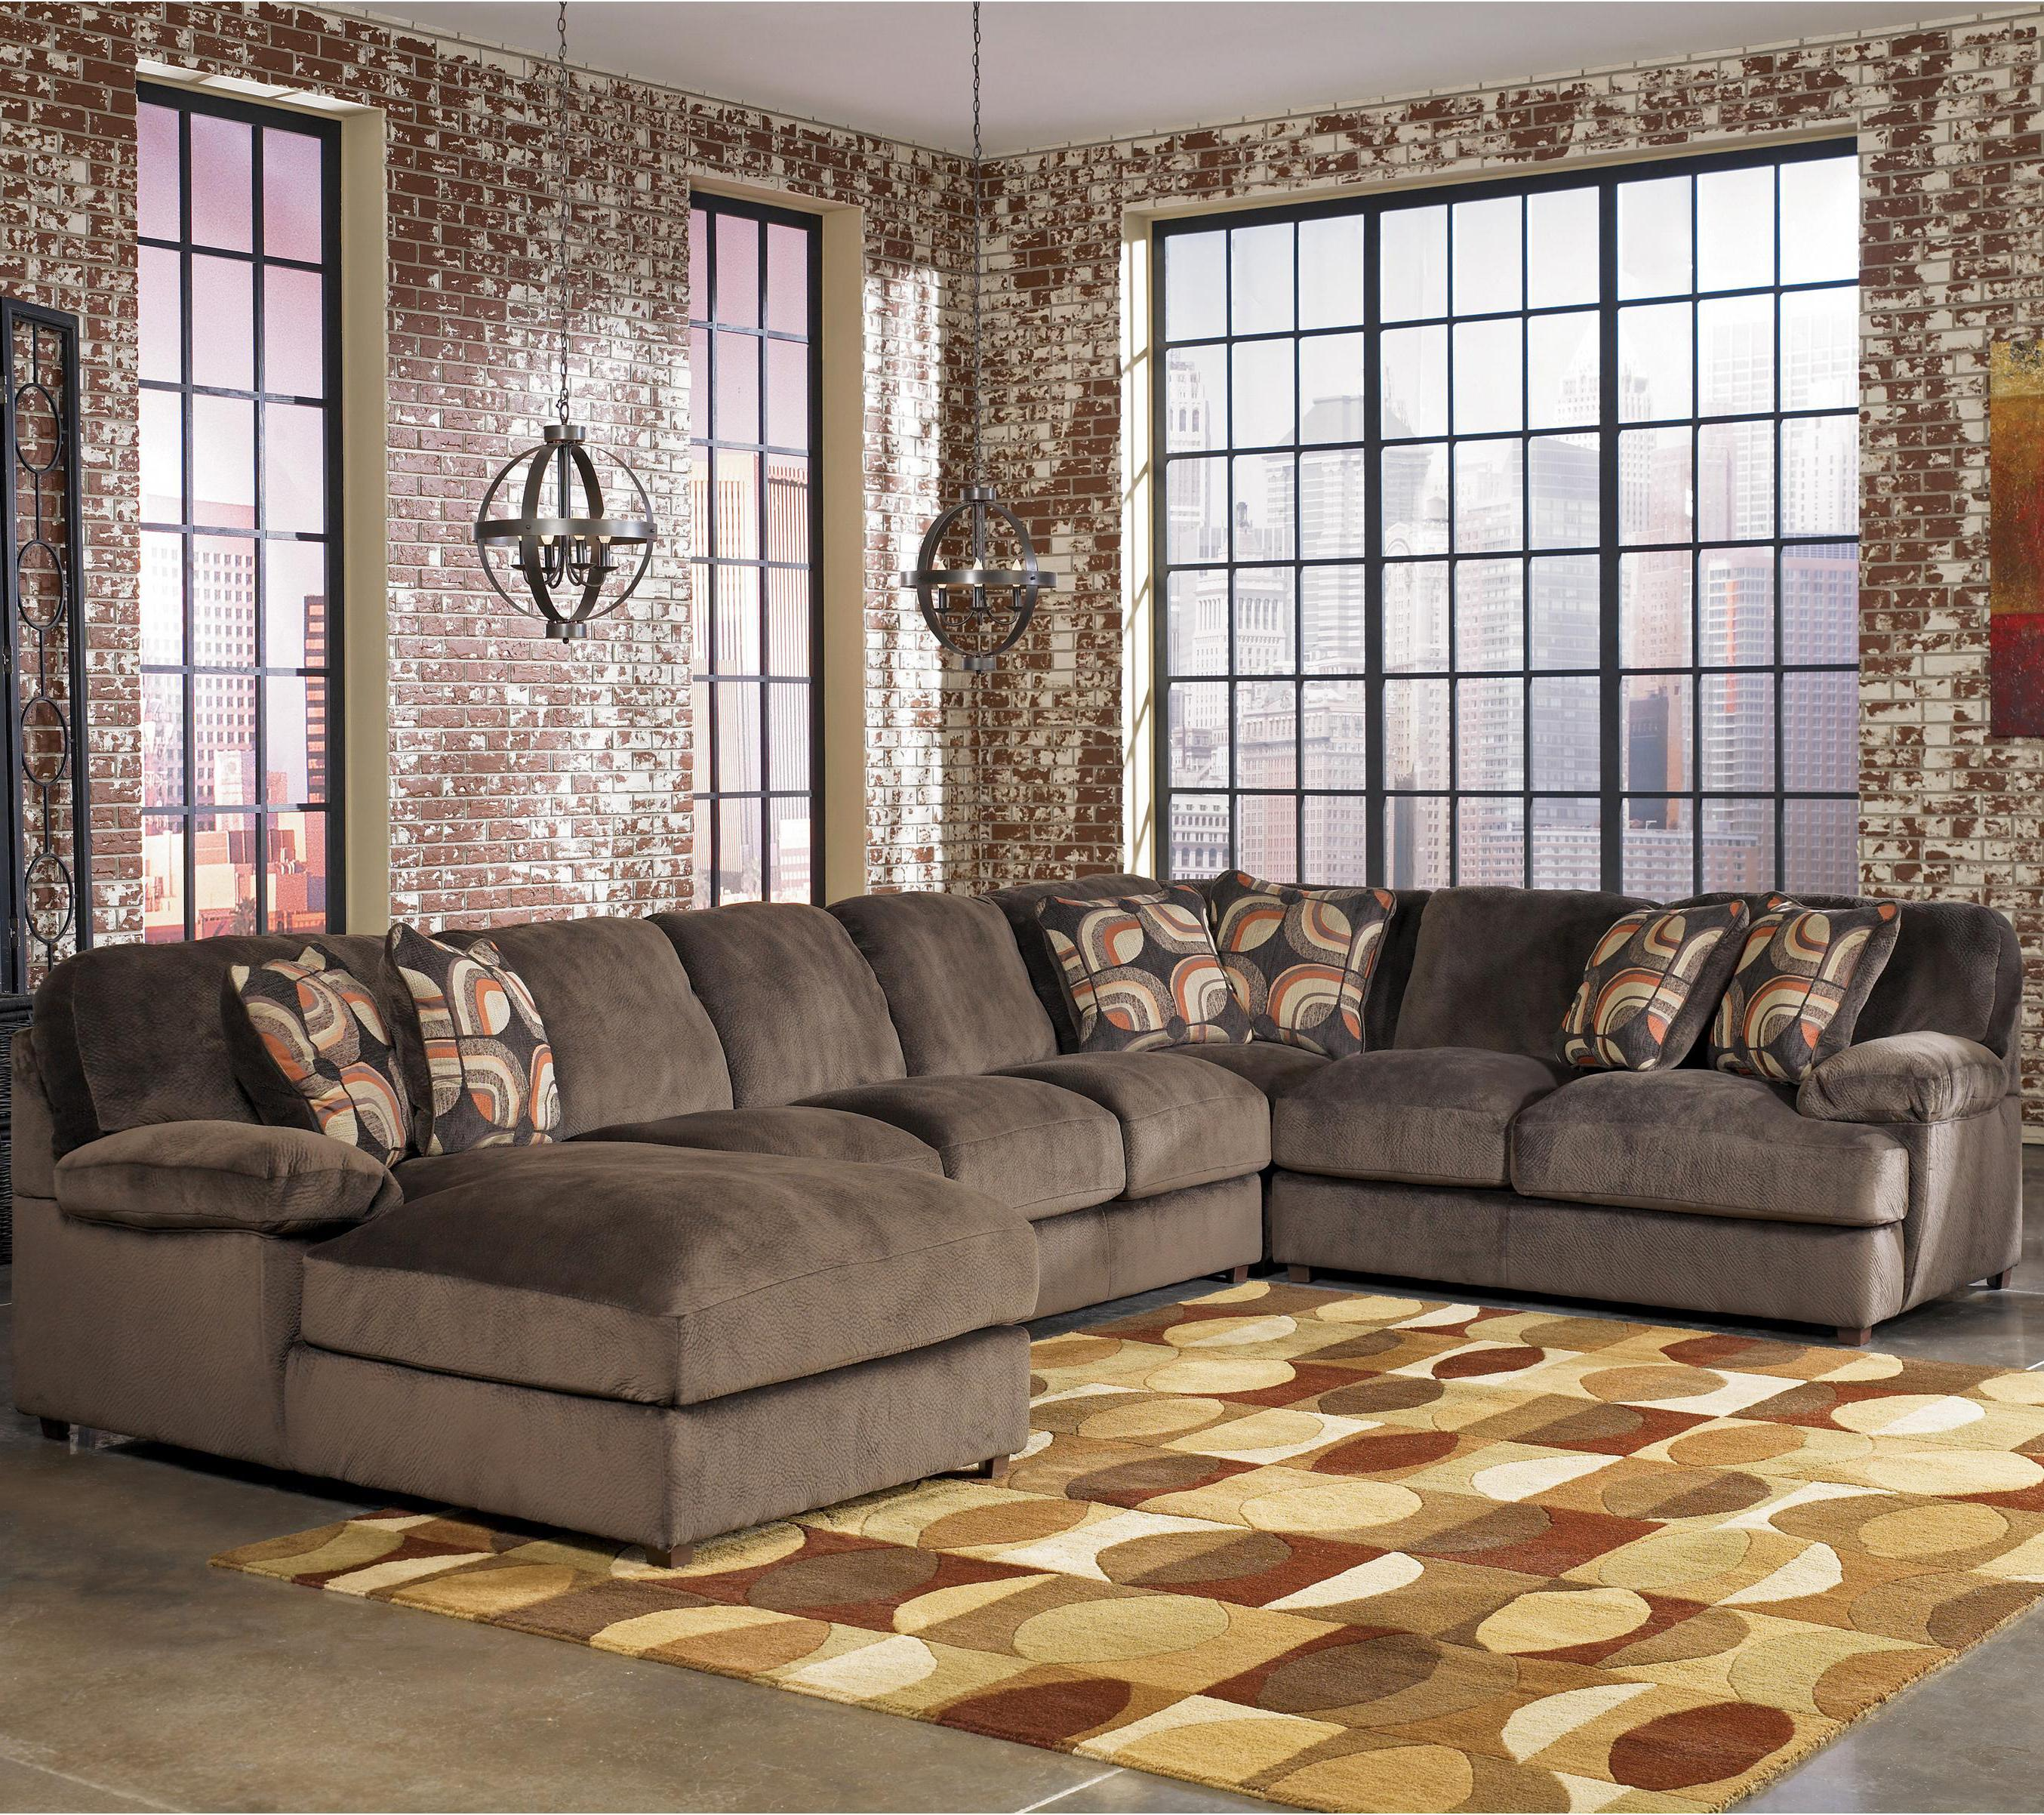 Signature Design by Ashley Truscotti Cafe Contemporary 4 Piece